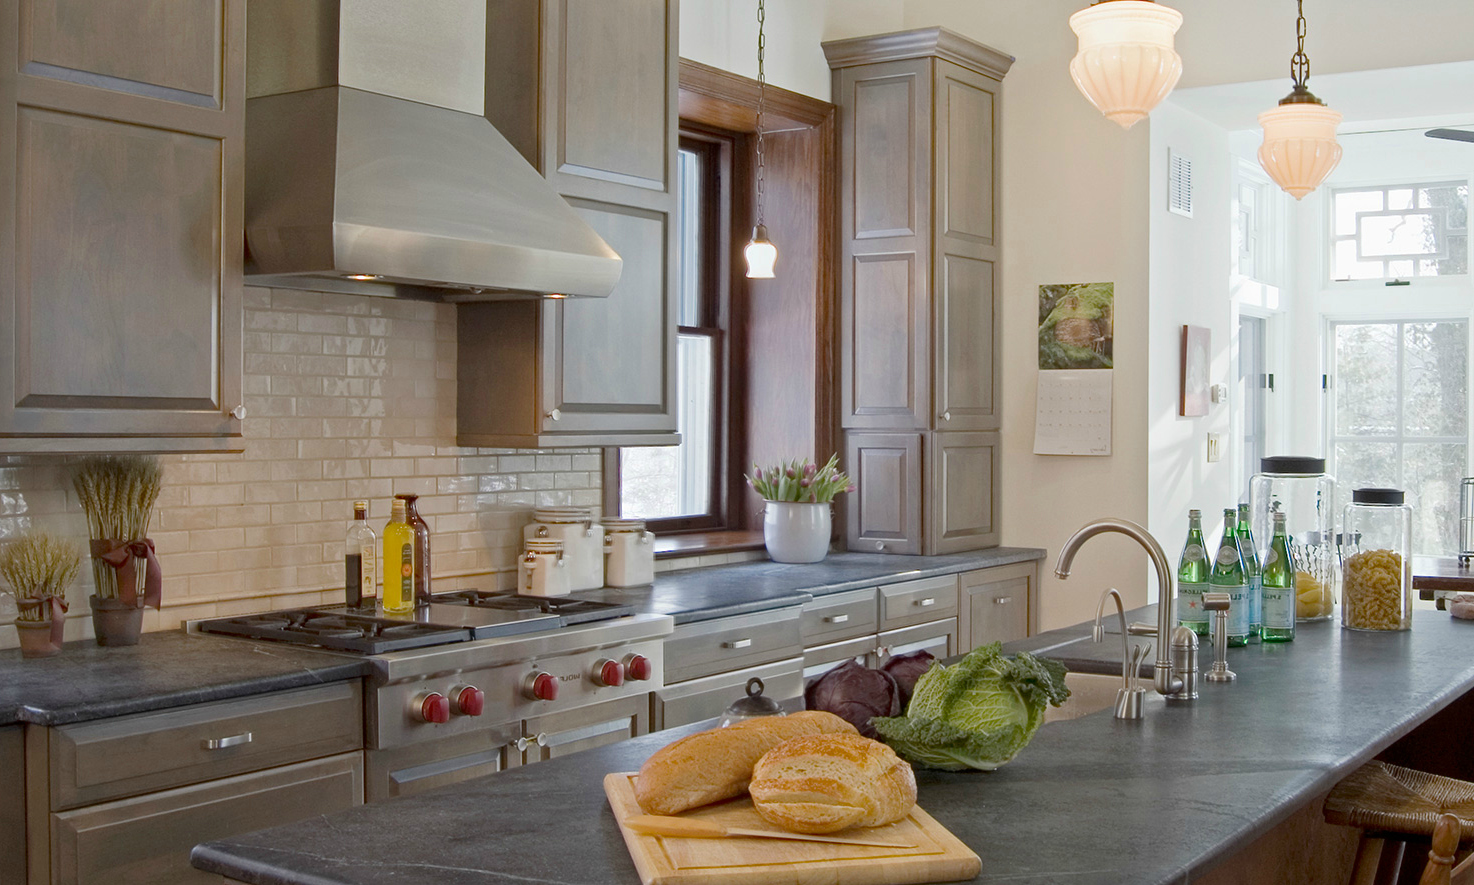 Contact Us To Pick Out Your Soapstone Countertops Today!